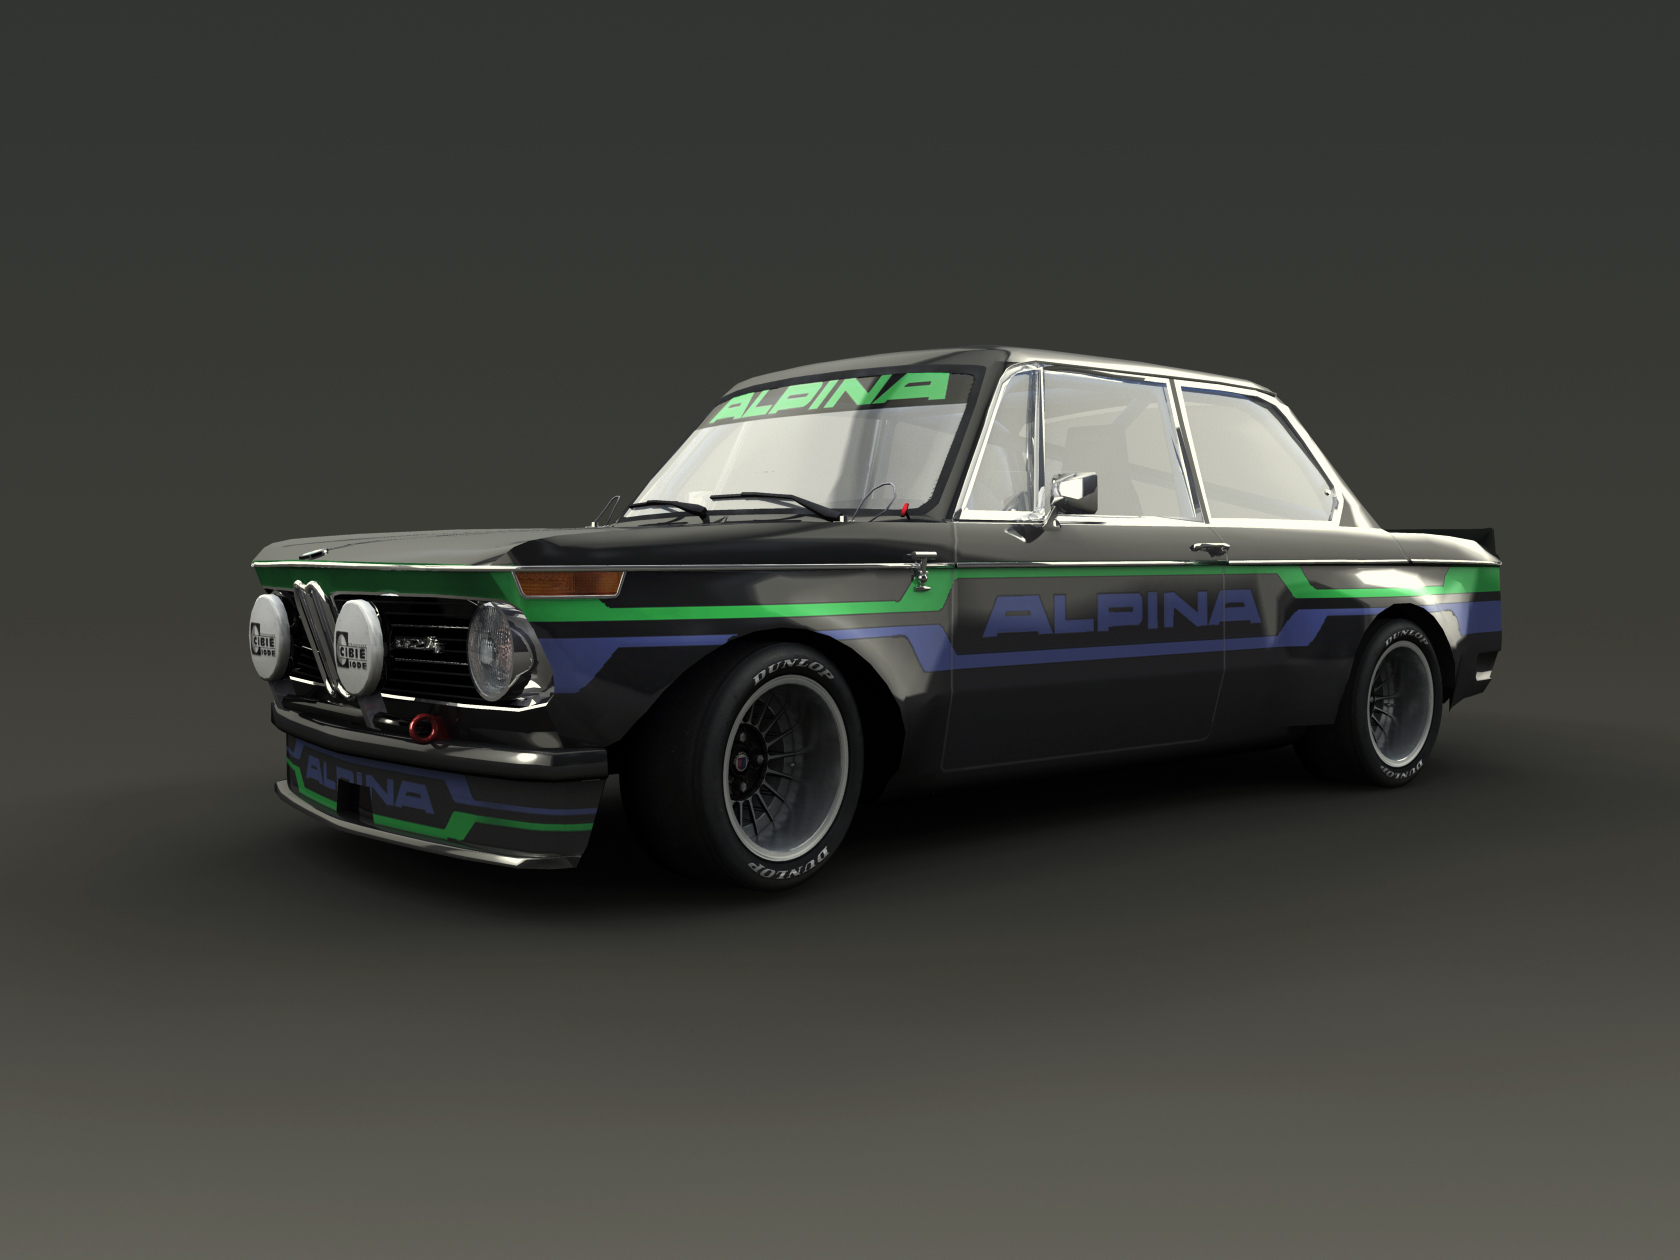 odell 39 s blog bmw 2002 tii turbo rally racer. Black Bedroom Furniture Sets. Home Design Ideas